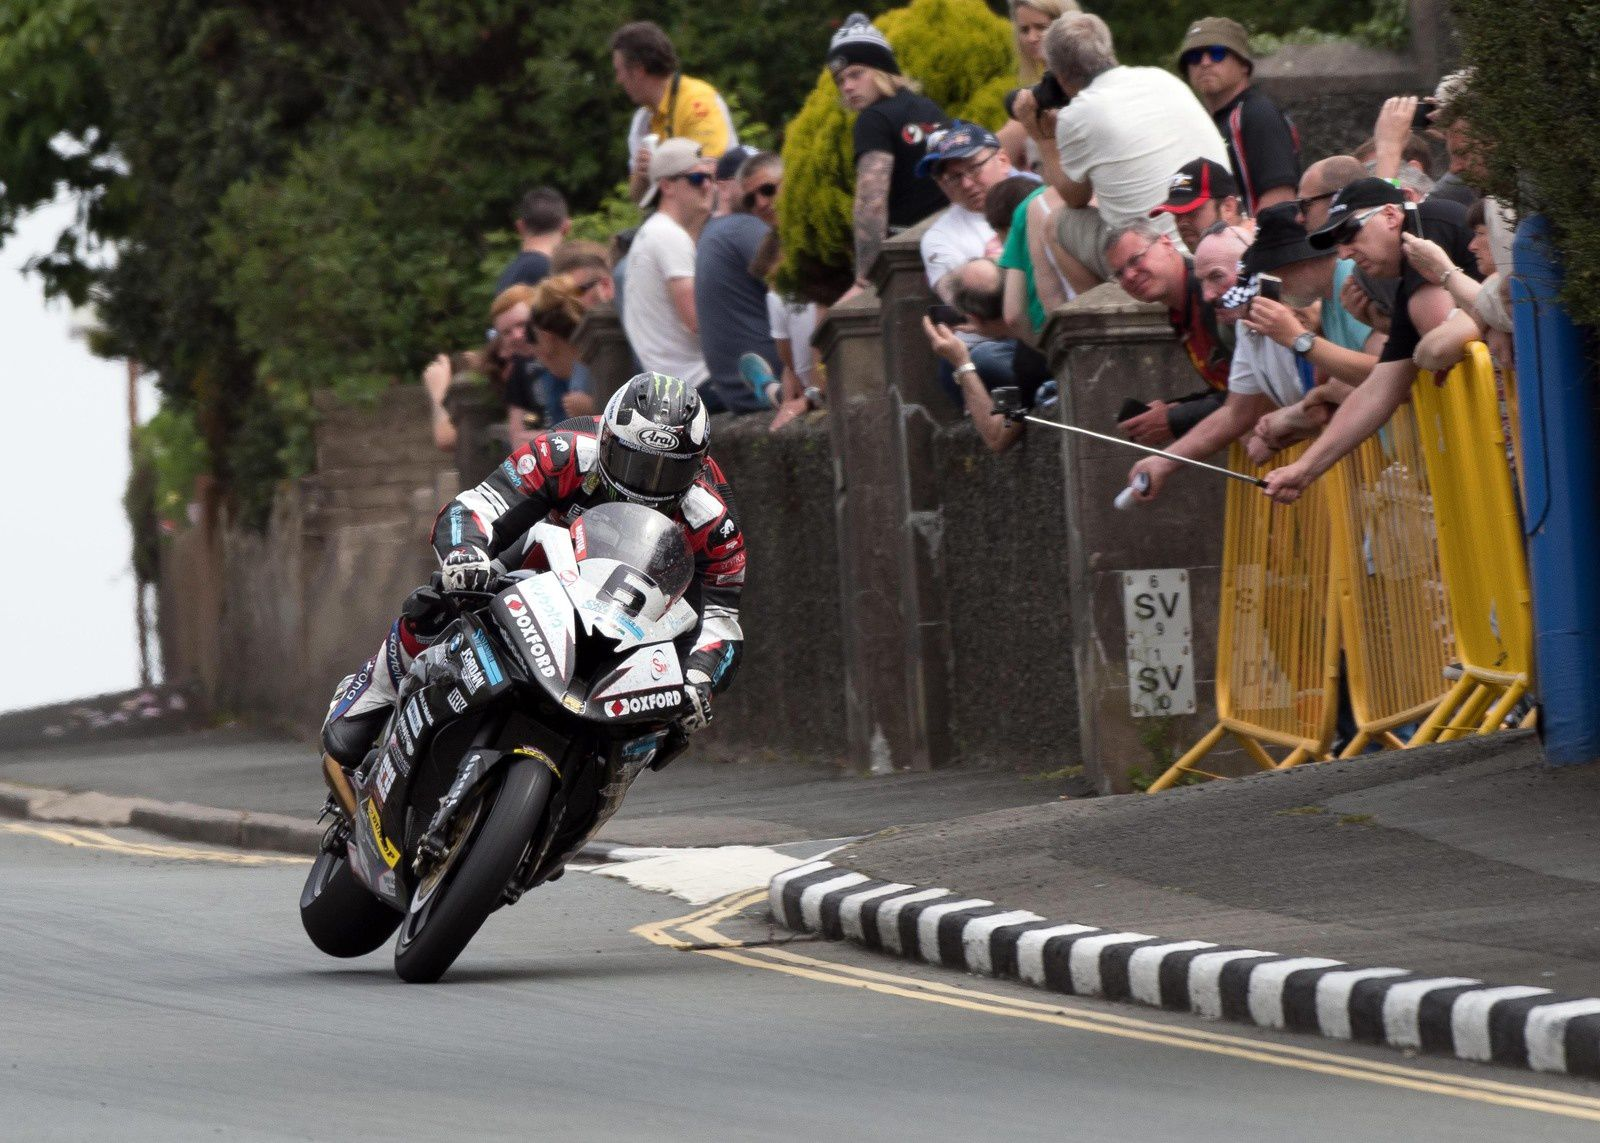 Michael Dunlop TT Superbike race 2016 ©Steve English